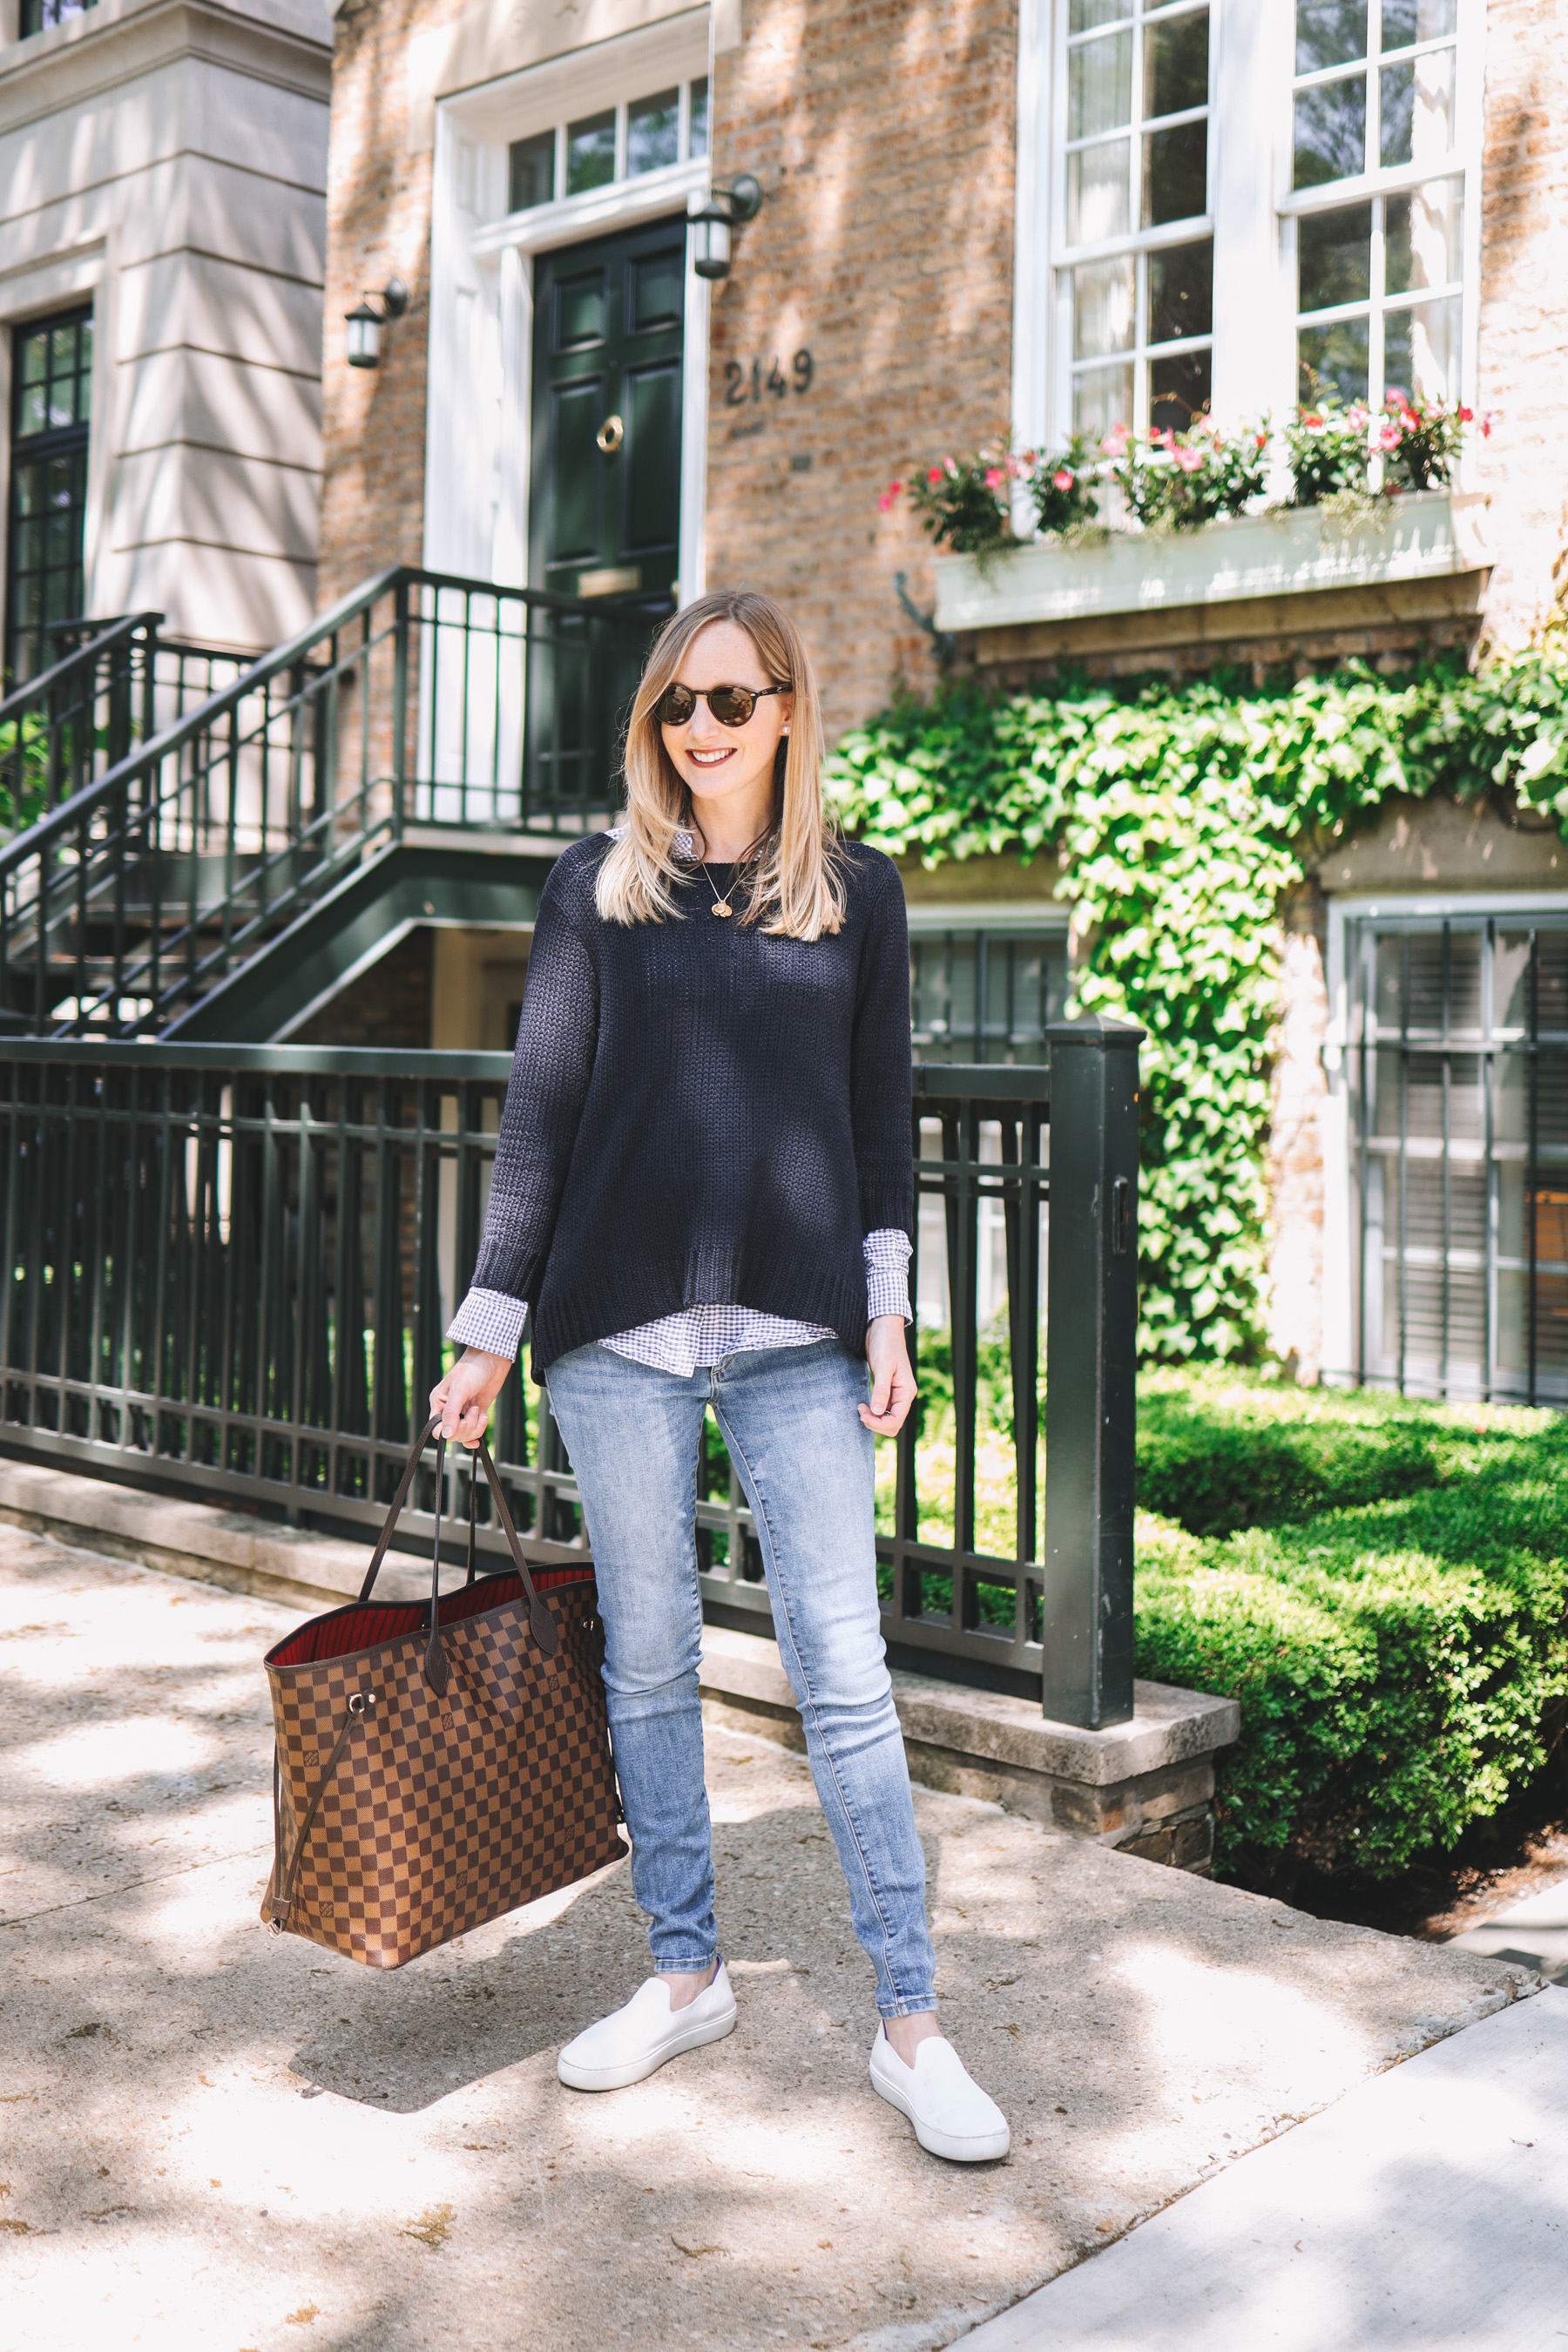 Kely's outfit details: Maternity Jeans / Rothy's Washable Sneakers / Tuckernuck Bow Sweater / J.McLaughlin Gingham Button-Down / Louis Vuitton Neverfull GM / Stamped Initial Necklace / Ray-Ban Sunglasses